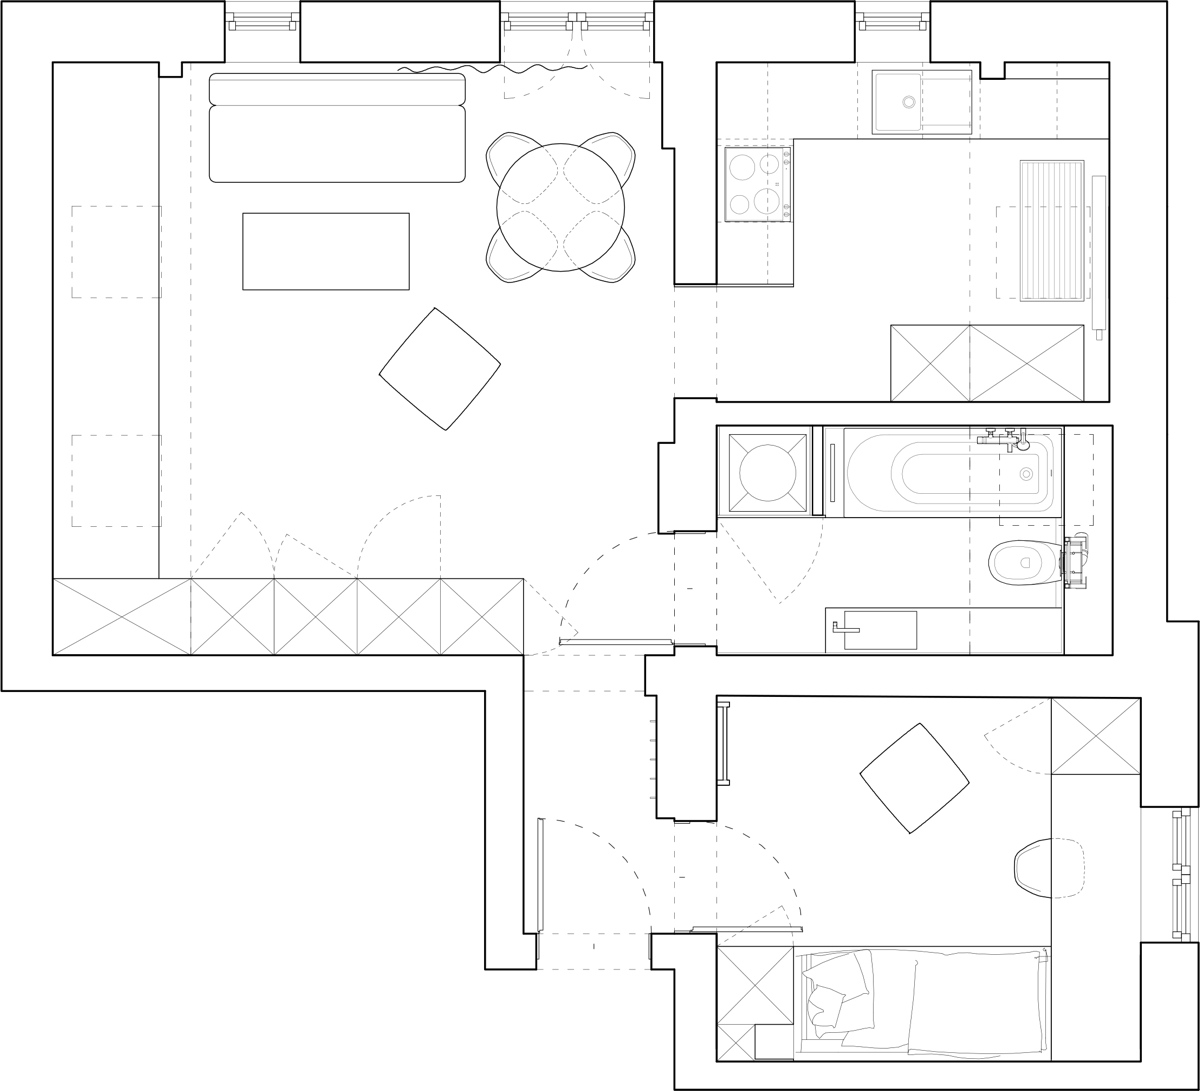 Small Apartment Design Floor Plan: Beautiful Attic Apartment With Clever Design Features